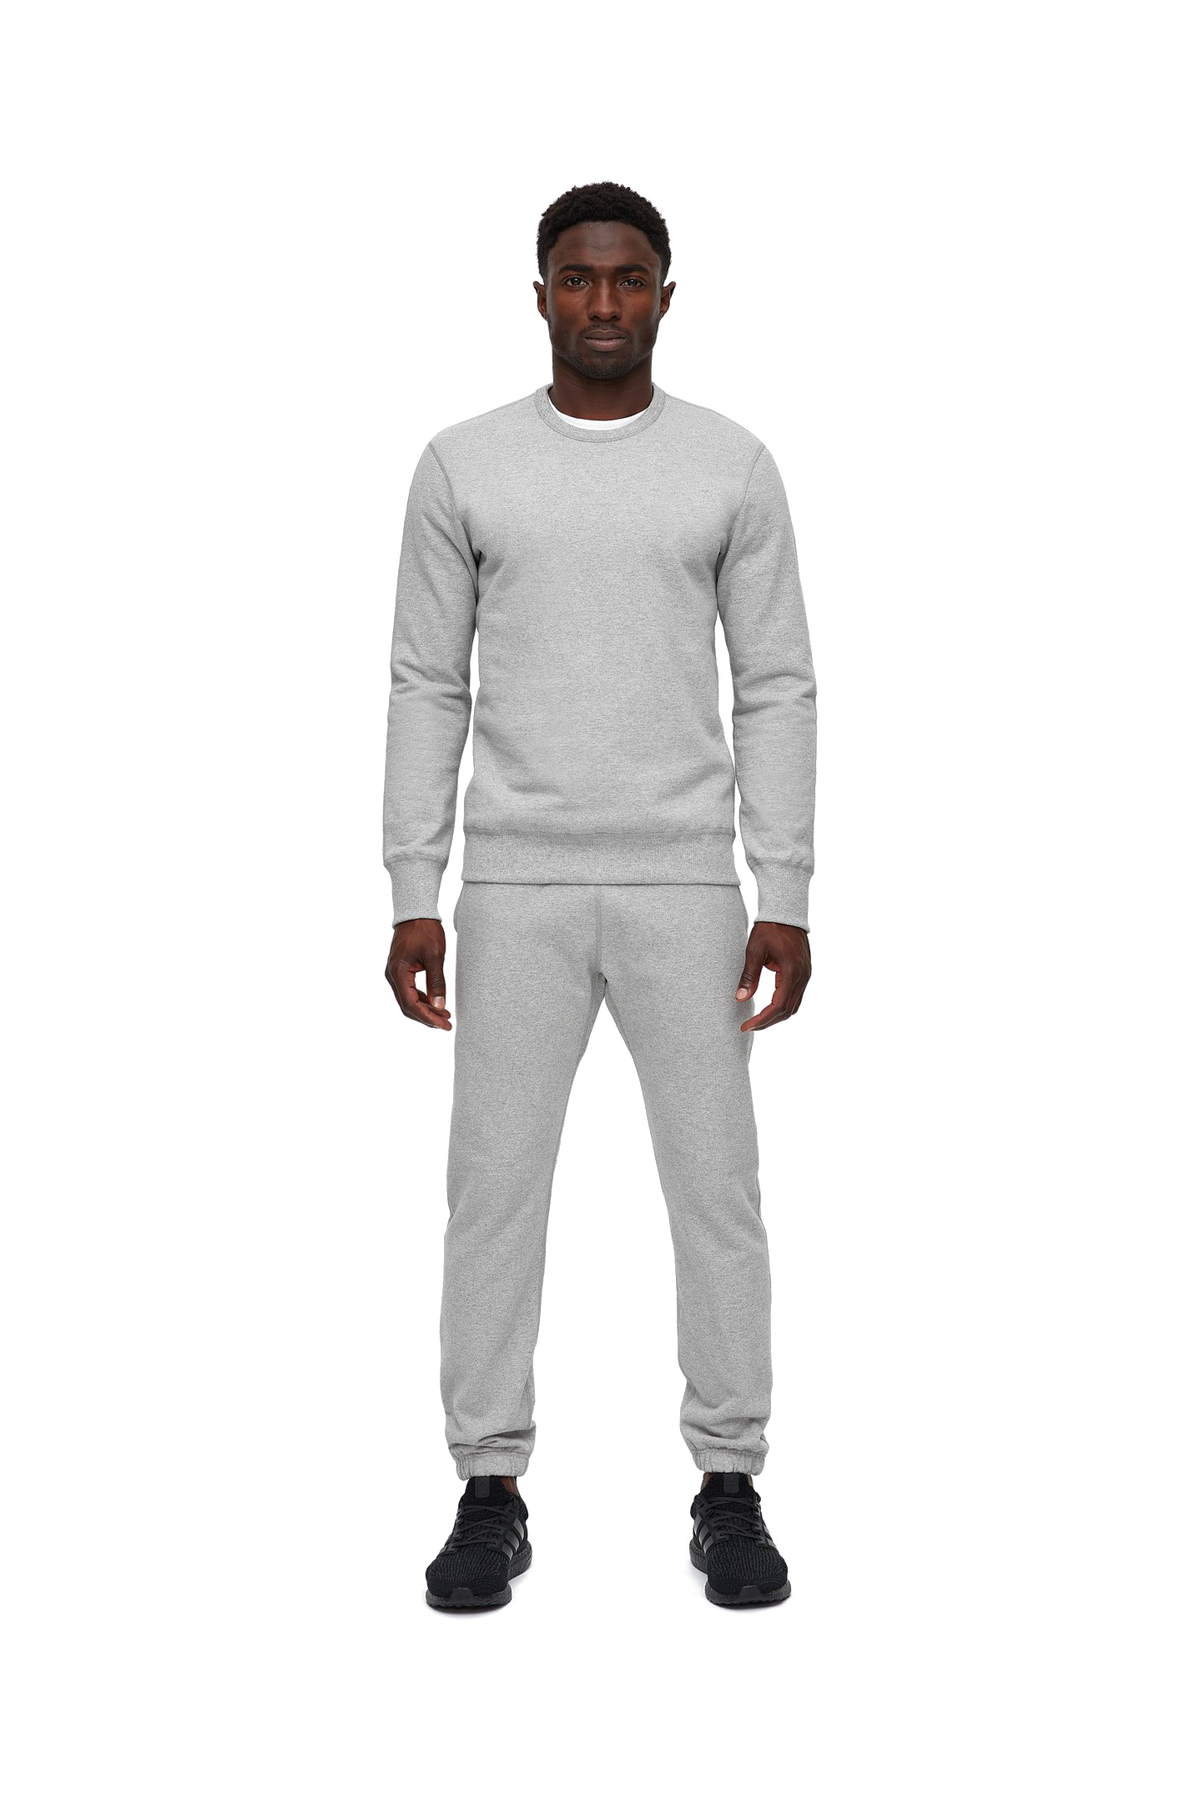 Cuffed Sweatpant - Grey